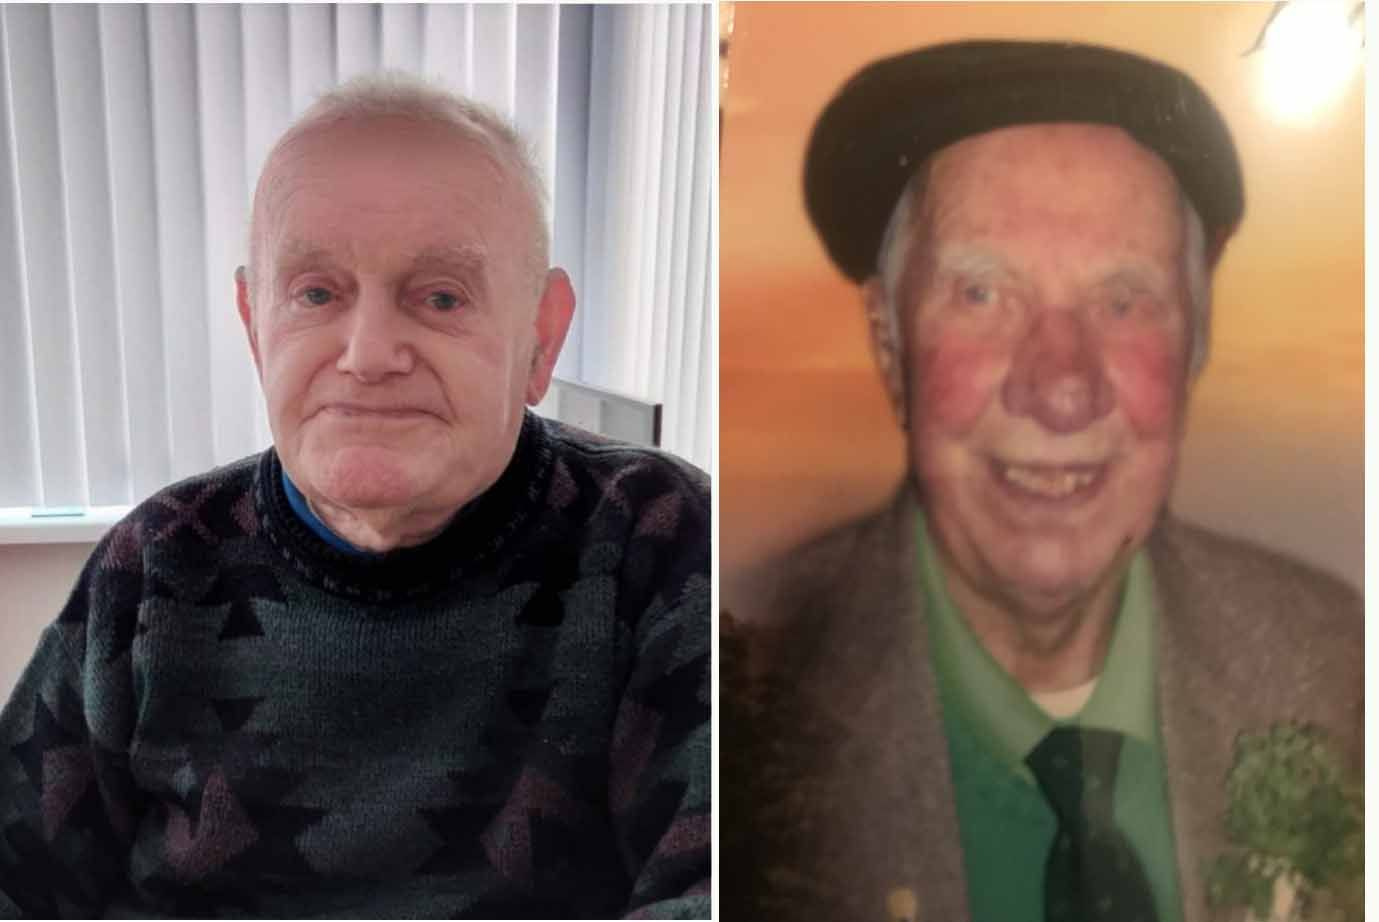 CHARACTERS: Wee Pete McKernon and Paddy Duffy have passed away within 15 months of each other